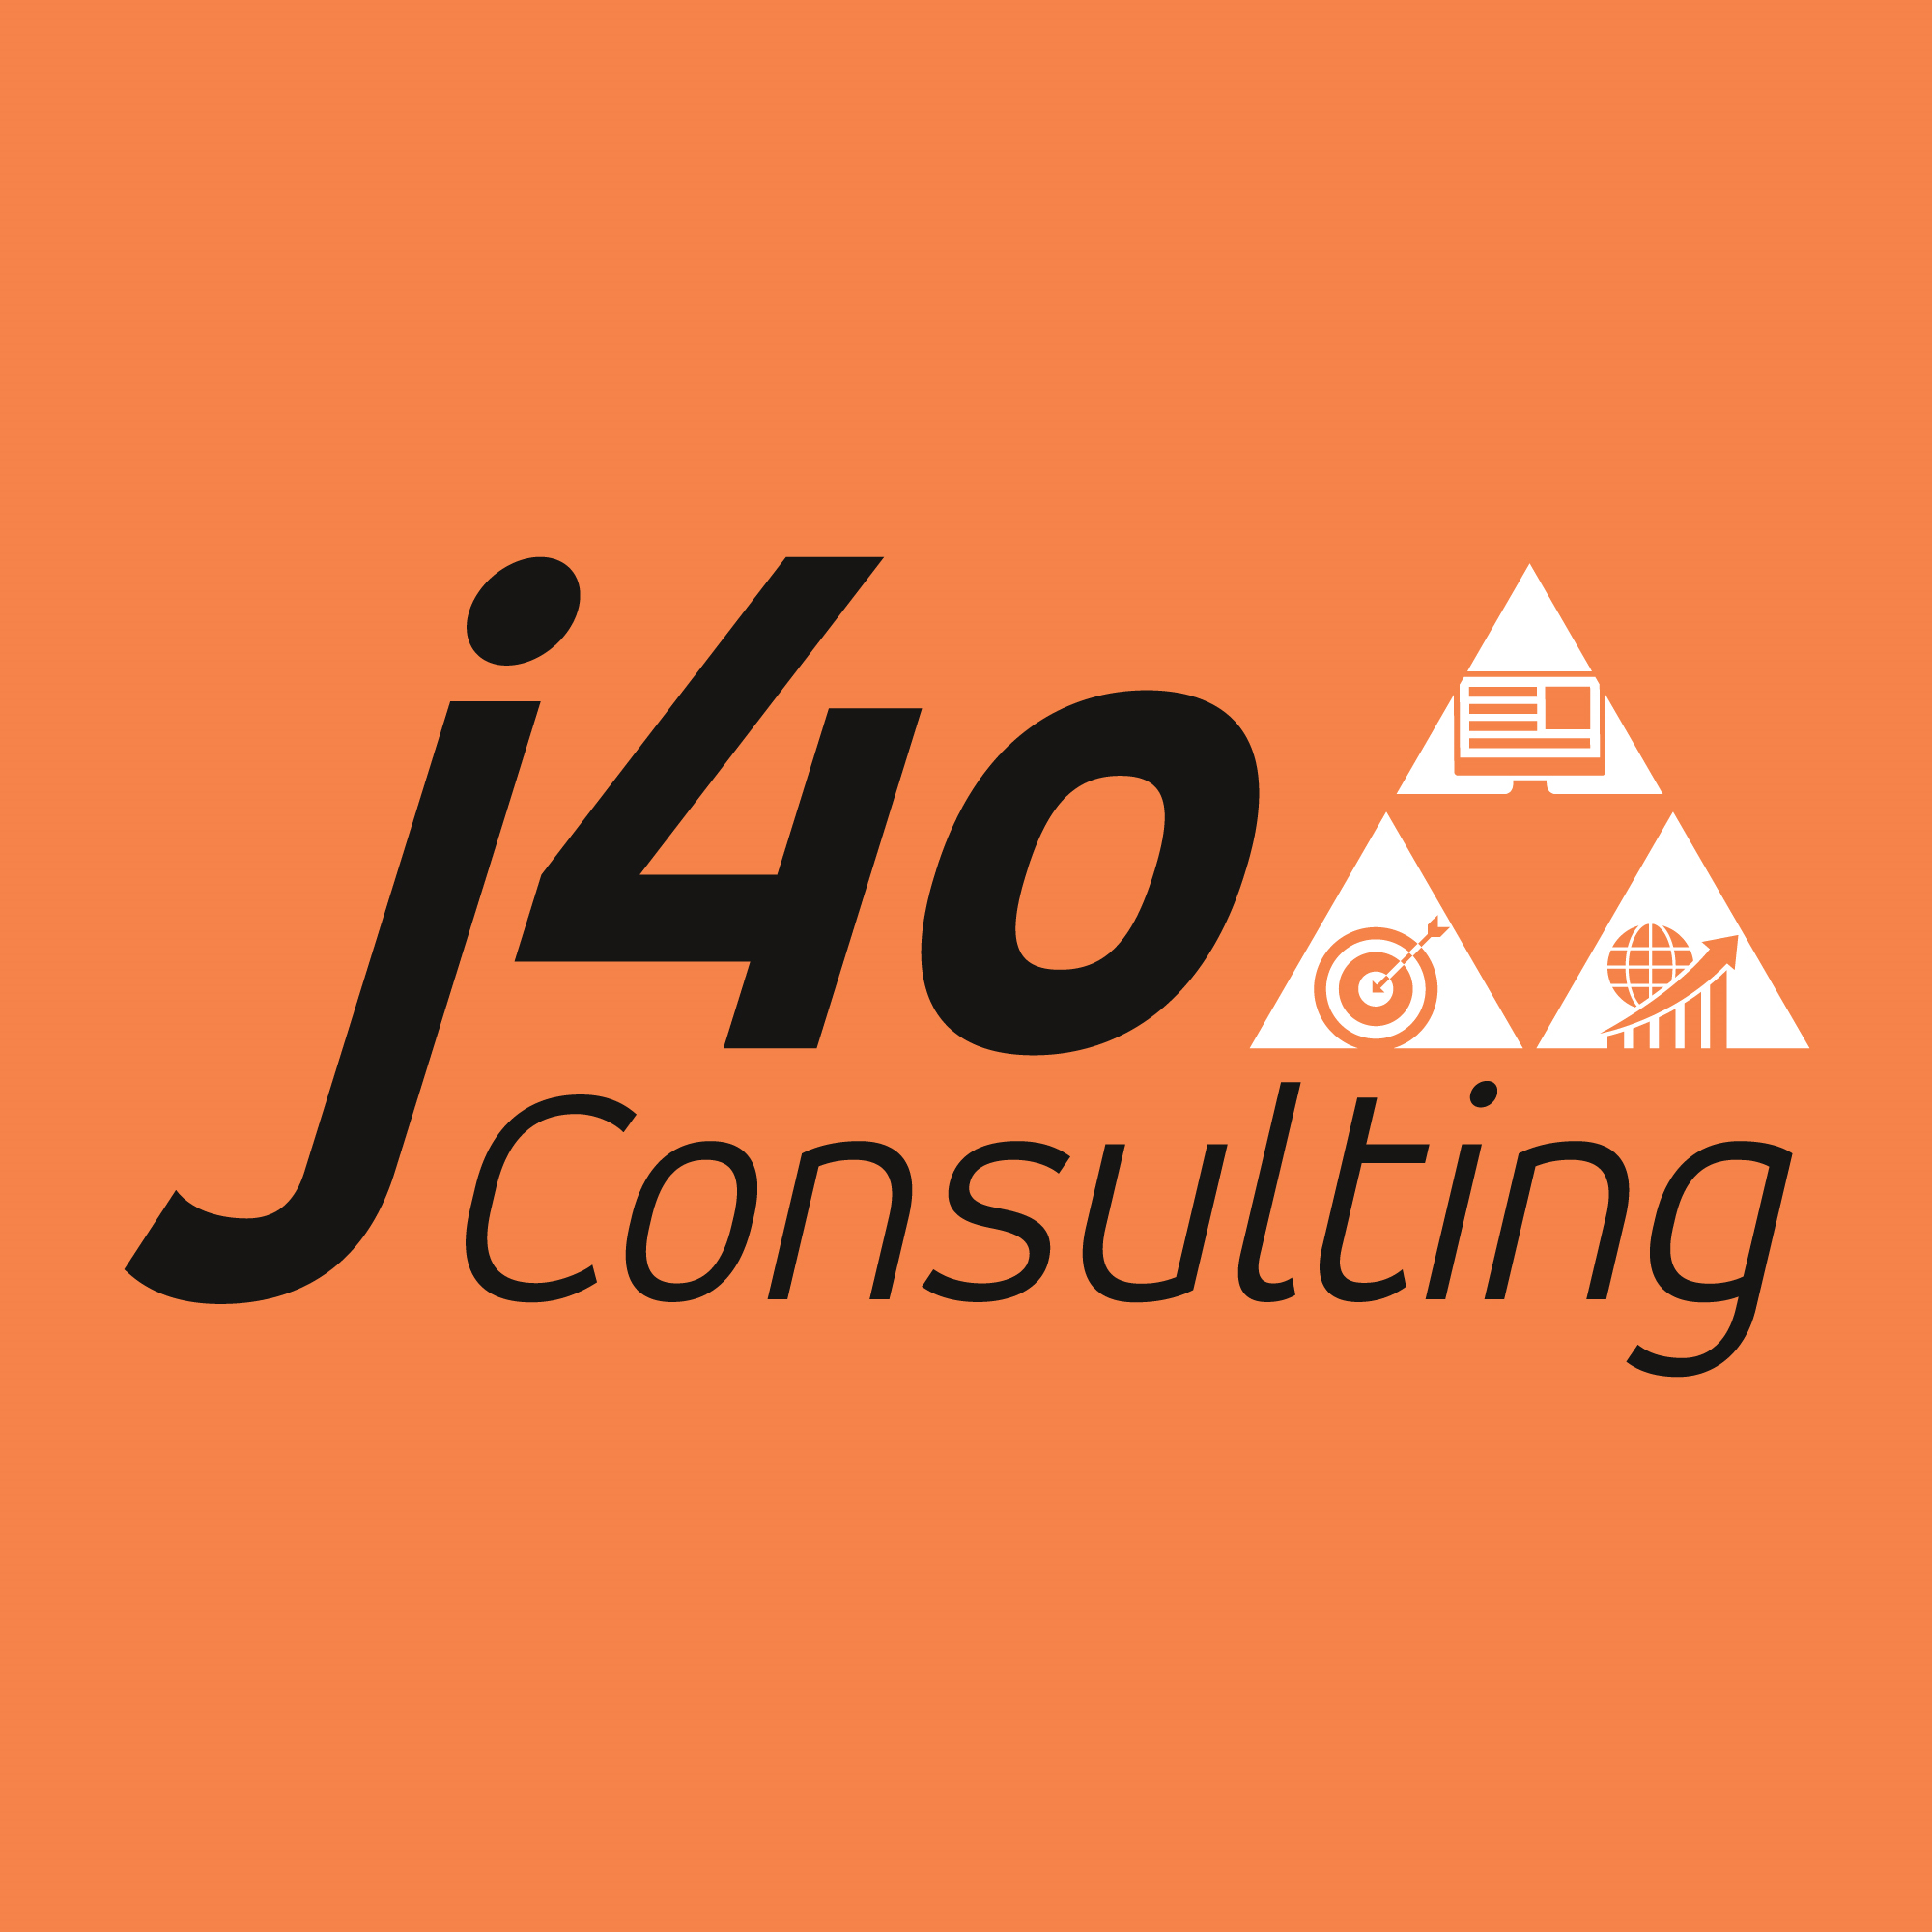 Internet Marketing Service in TX Fort Worth 76179 j4o Consulting 8101 Boat Club Road Ste 240 #231a (817)203-4442